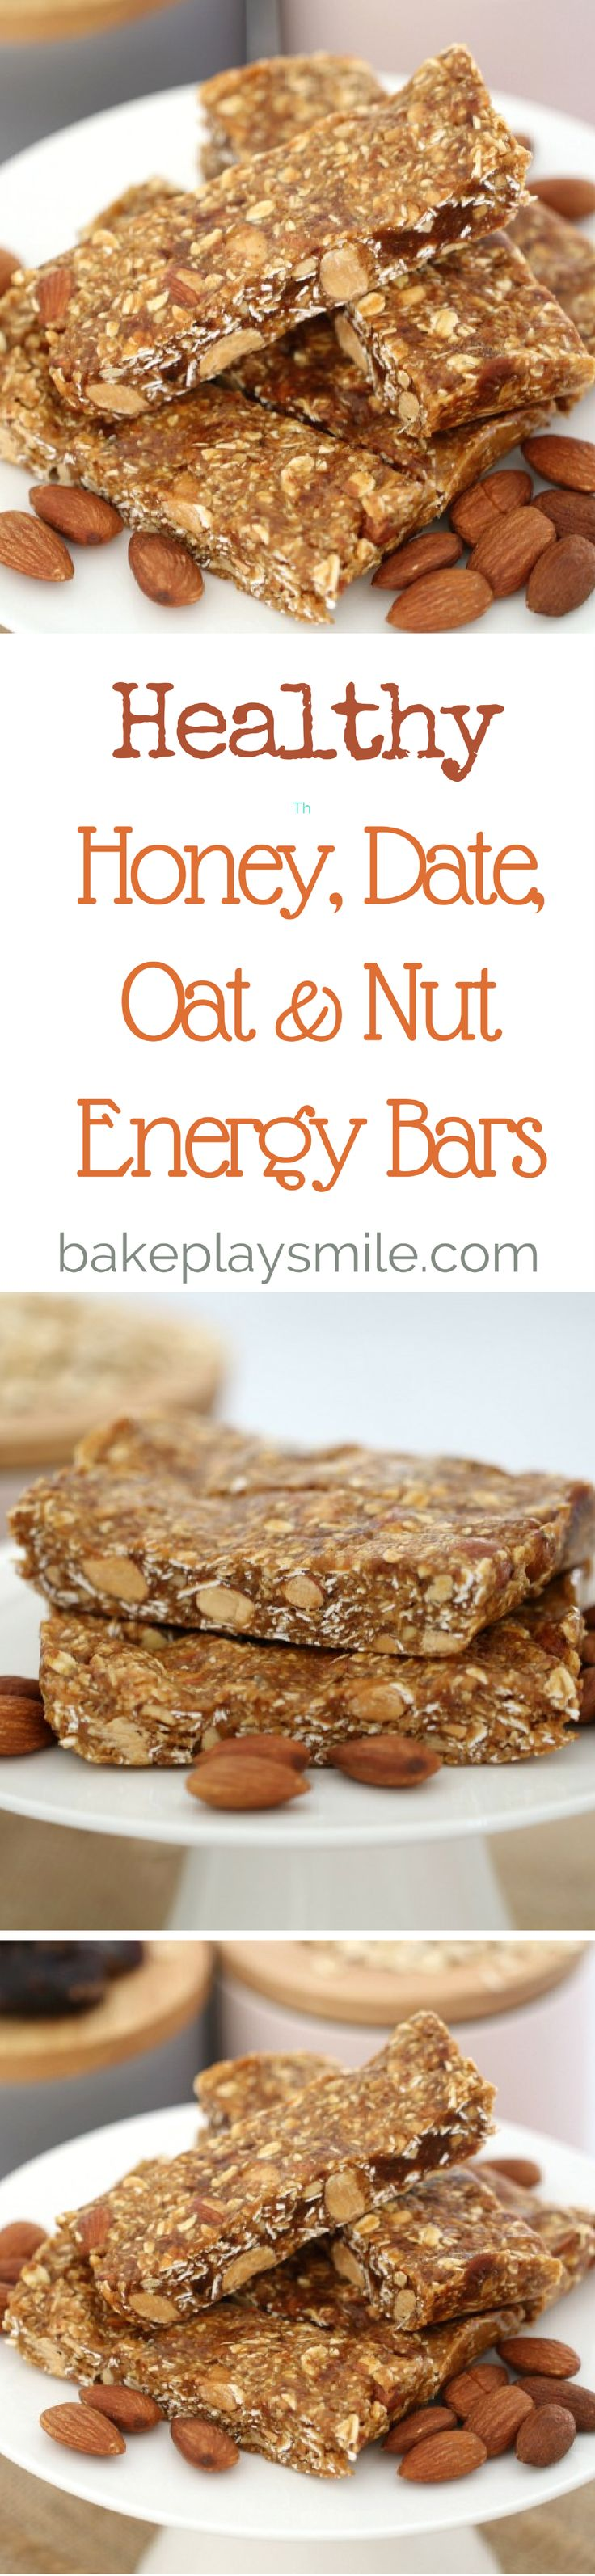 Honey, Date, Oat & Nut Energy Bars When you're after a healthy boost, these Honey, Date, Oat & Nut Energy Bars are just what you need. The perfect mid-afternoon pick-me-up! #healthy #energy #bars #slice #fit #workout #thermomix #conventional